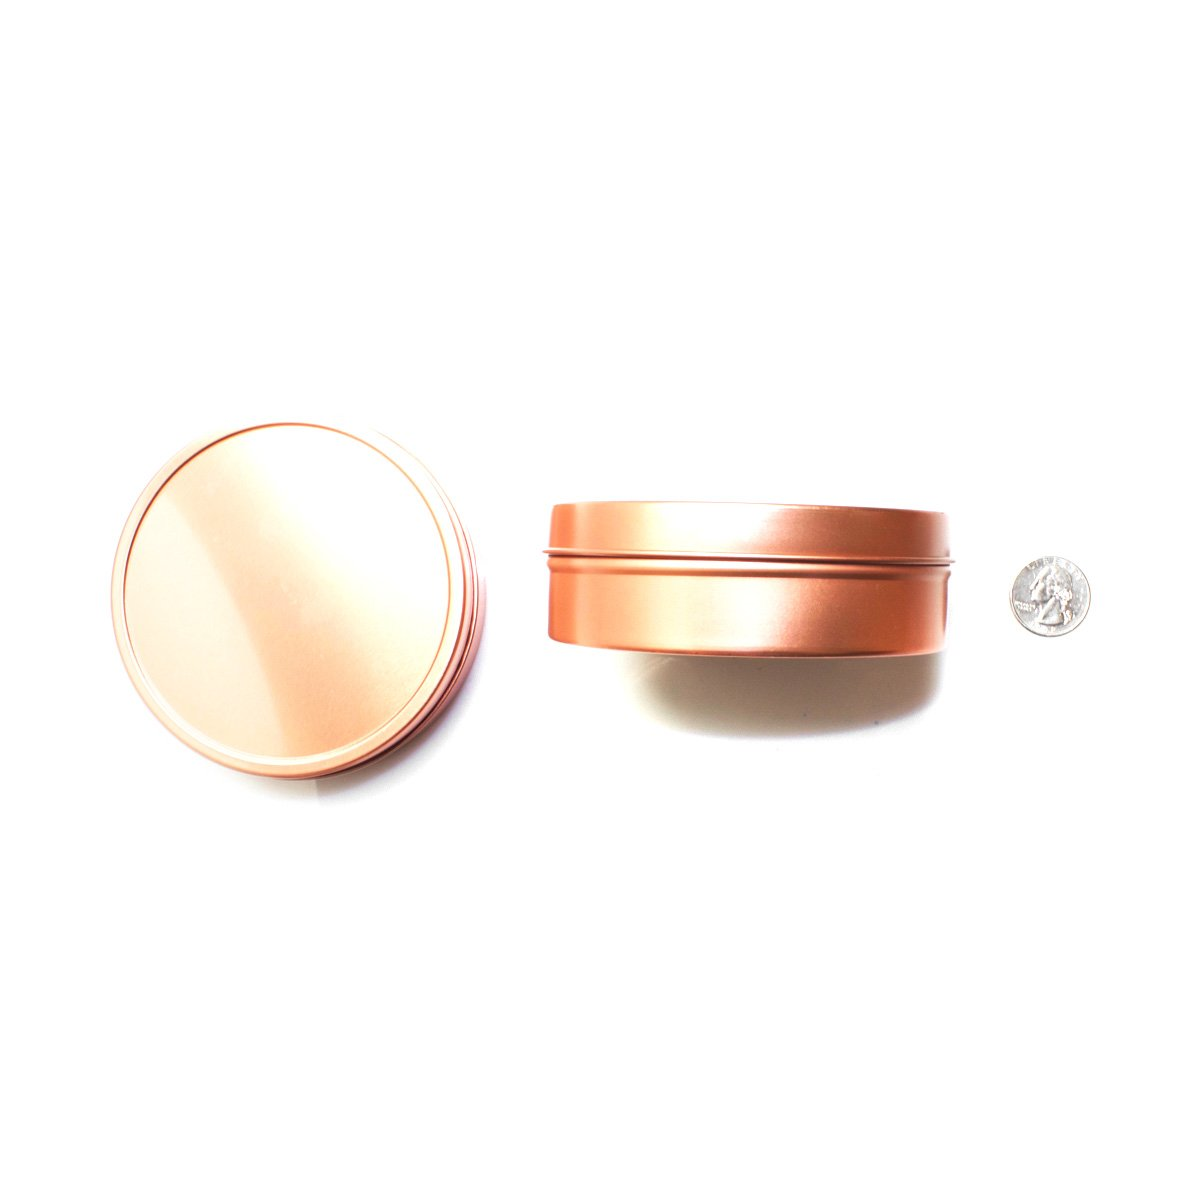 Mimi Pack ALL Shallow Solid Slip Top Tins (8 oz, Rose Gold) by Mimi Pack (Image #8)